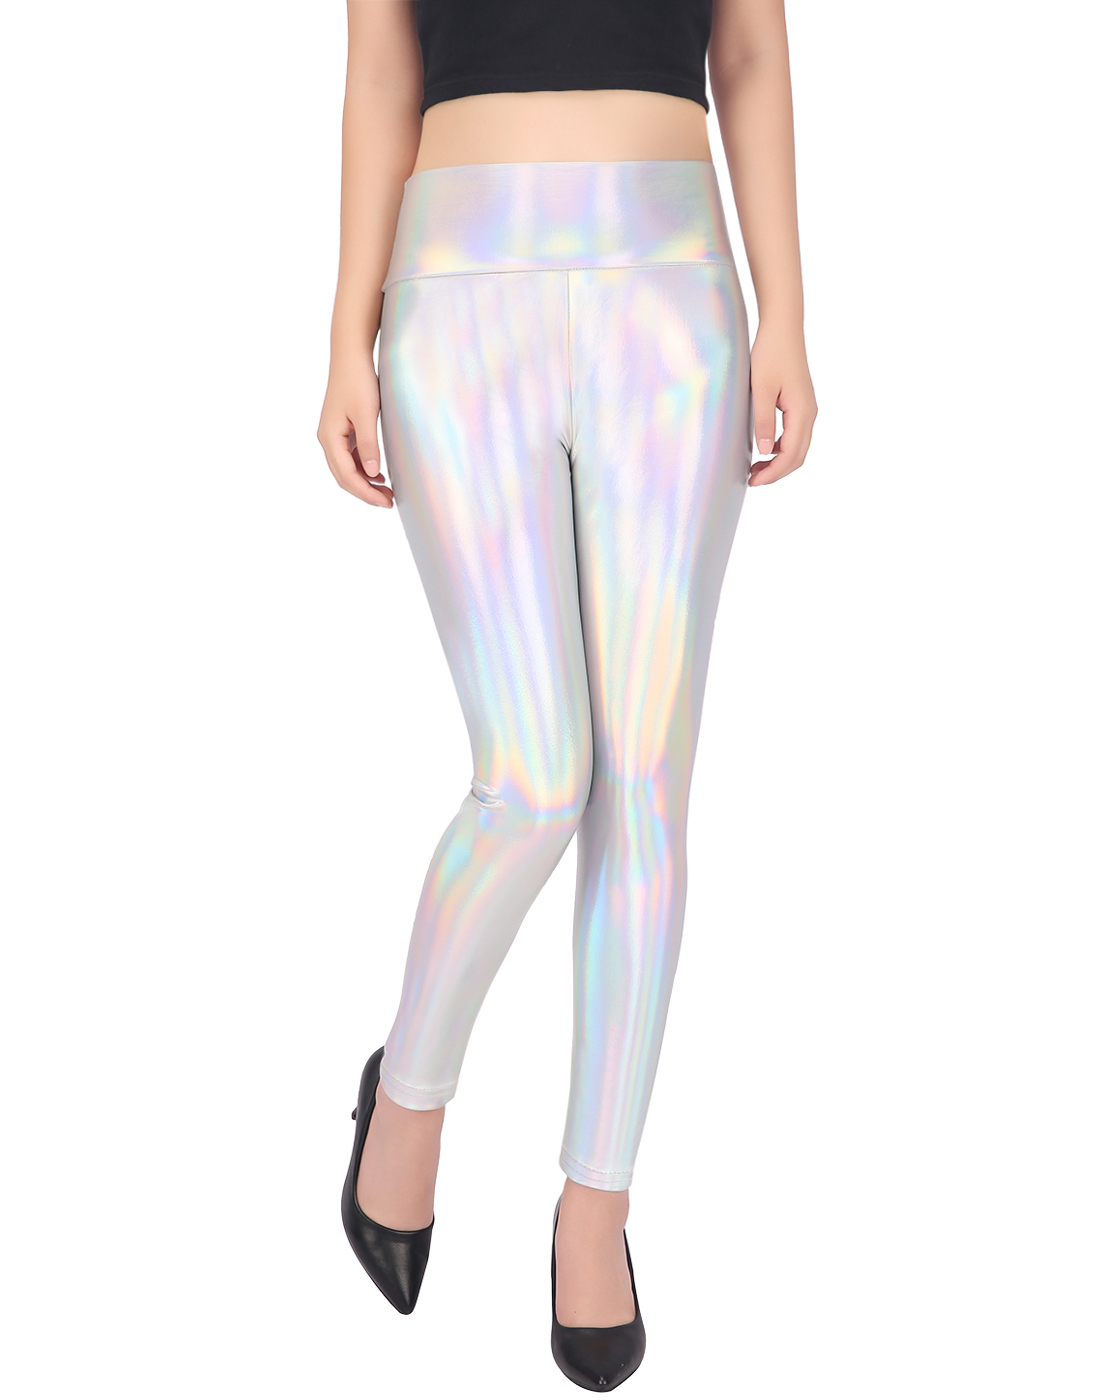 c3ab17ce46 Details about Womens Shiny Holographic Leggings Sexy Iridescent Metallic  Clubwear